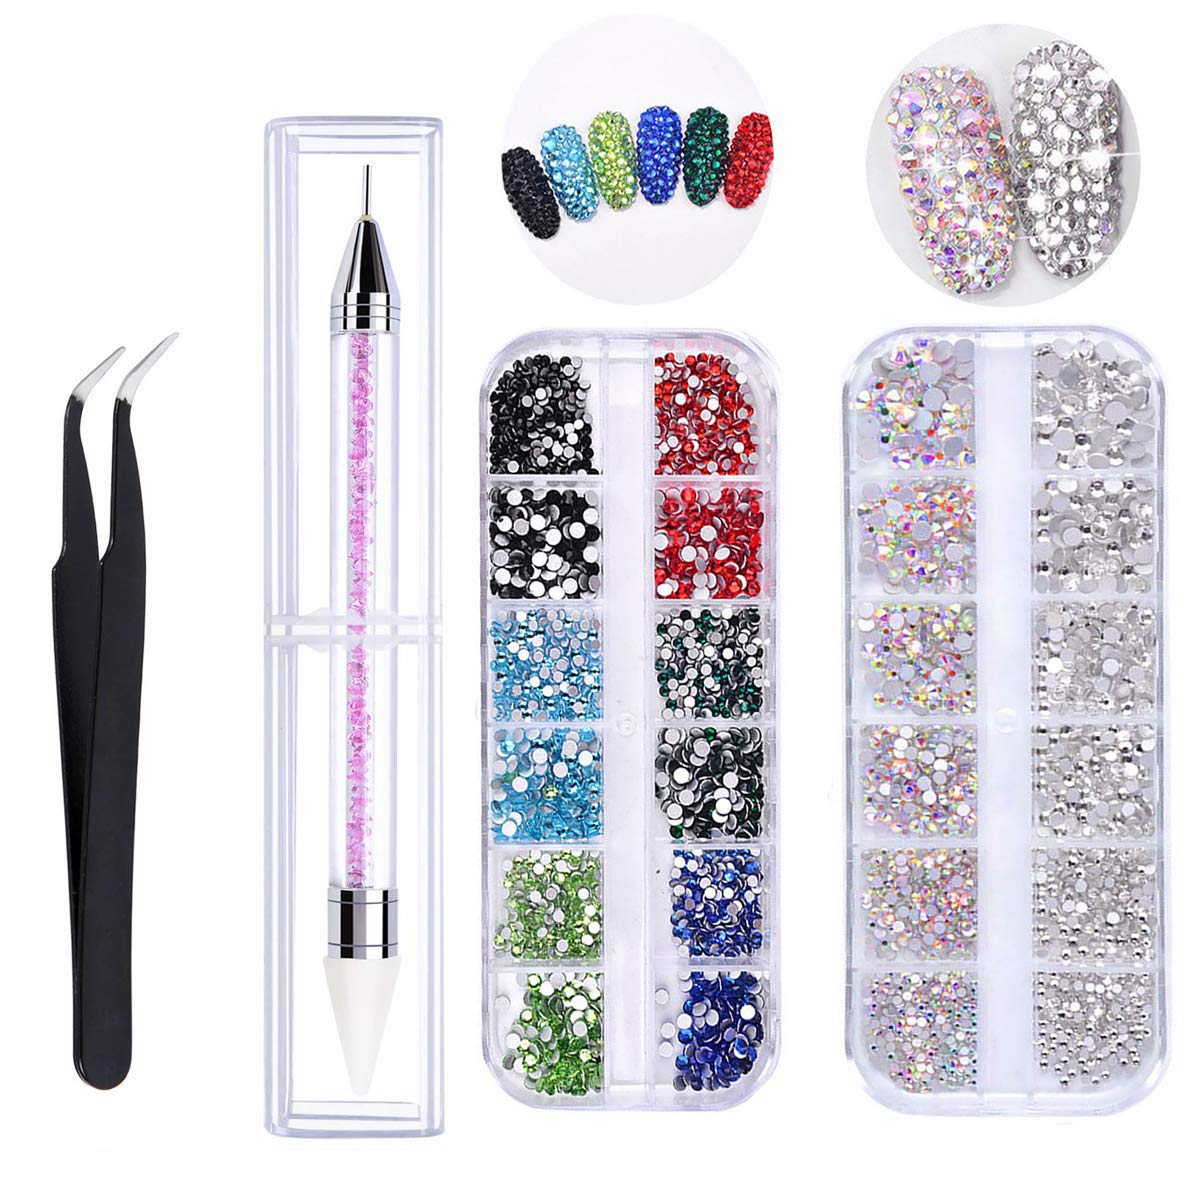 AB Nail Crystals Rhinestones Multi Shapes 3D Glass Nail Art Crystal Round Beads Flatback Glass Charms Gems Stones with Pick Up Tweezer and Rhinestone Picker Dotting Pen More than 4000pcs (6Size) by BeautyChen